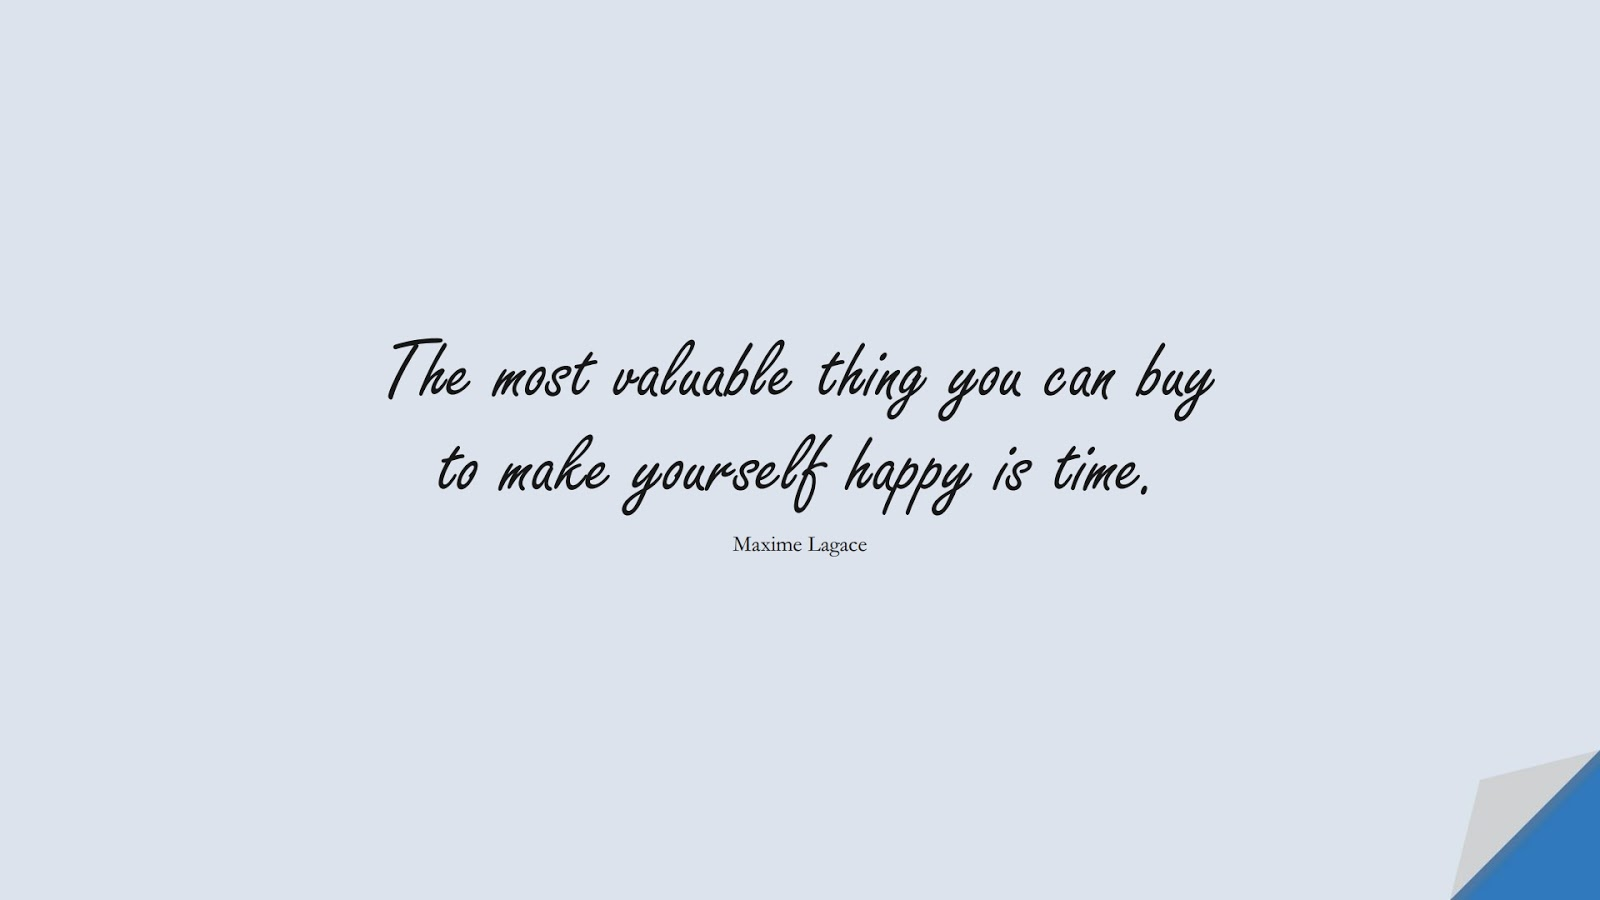 The most valuable thing you can buy to make yourself happy is time. (Maxime Lagace);  #HappinessQuotes